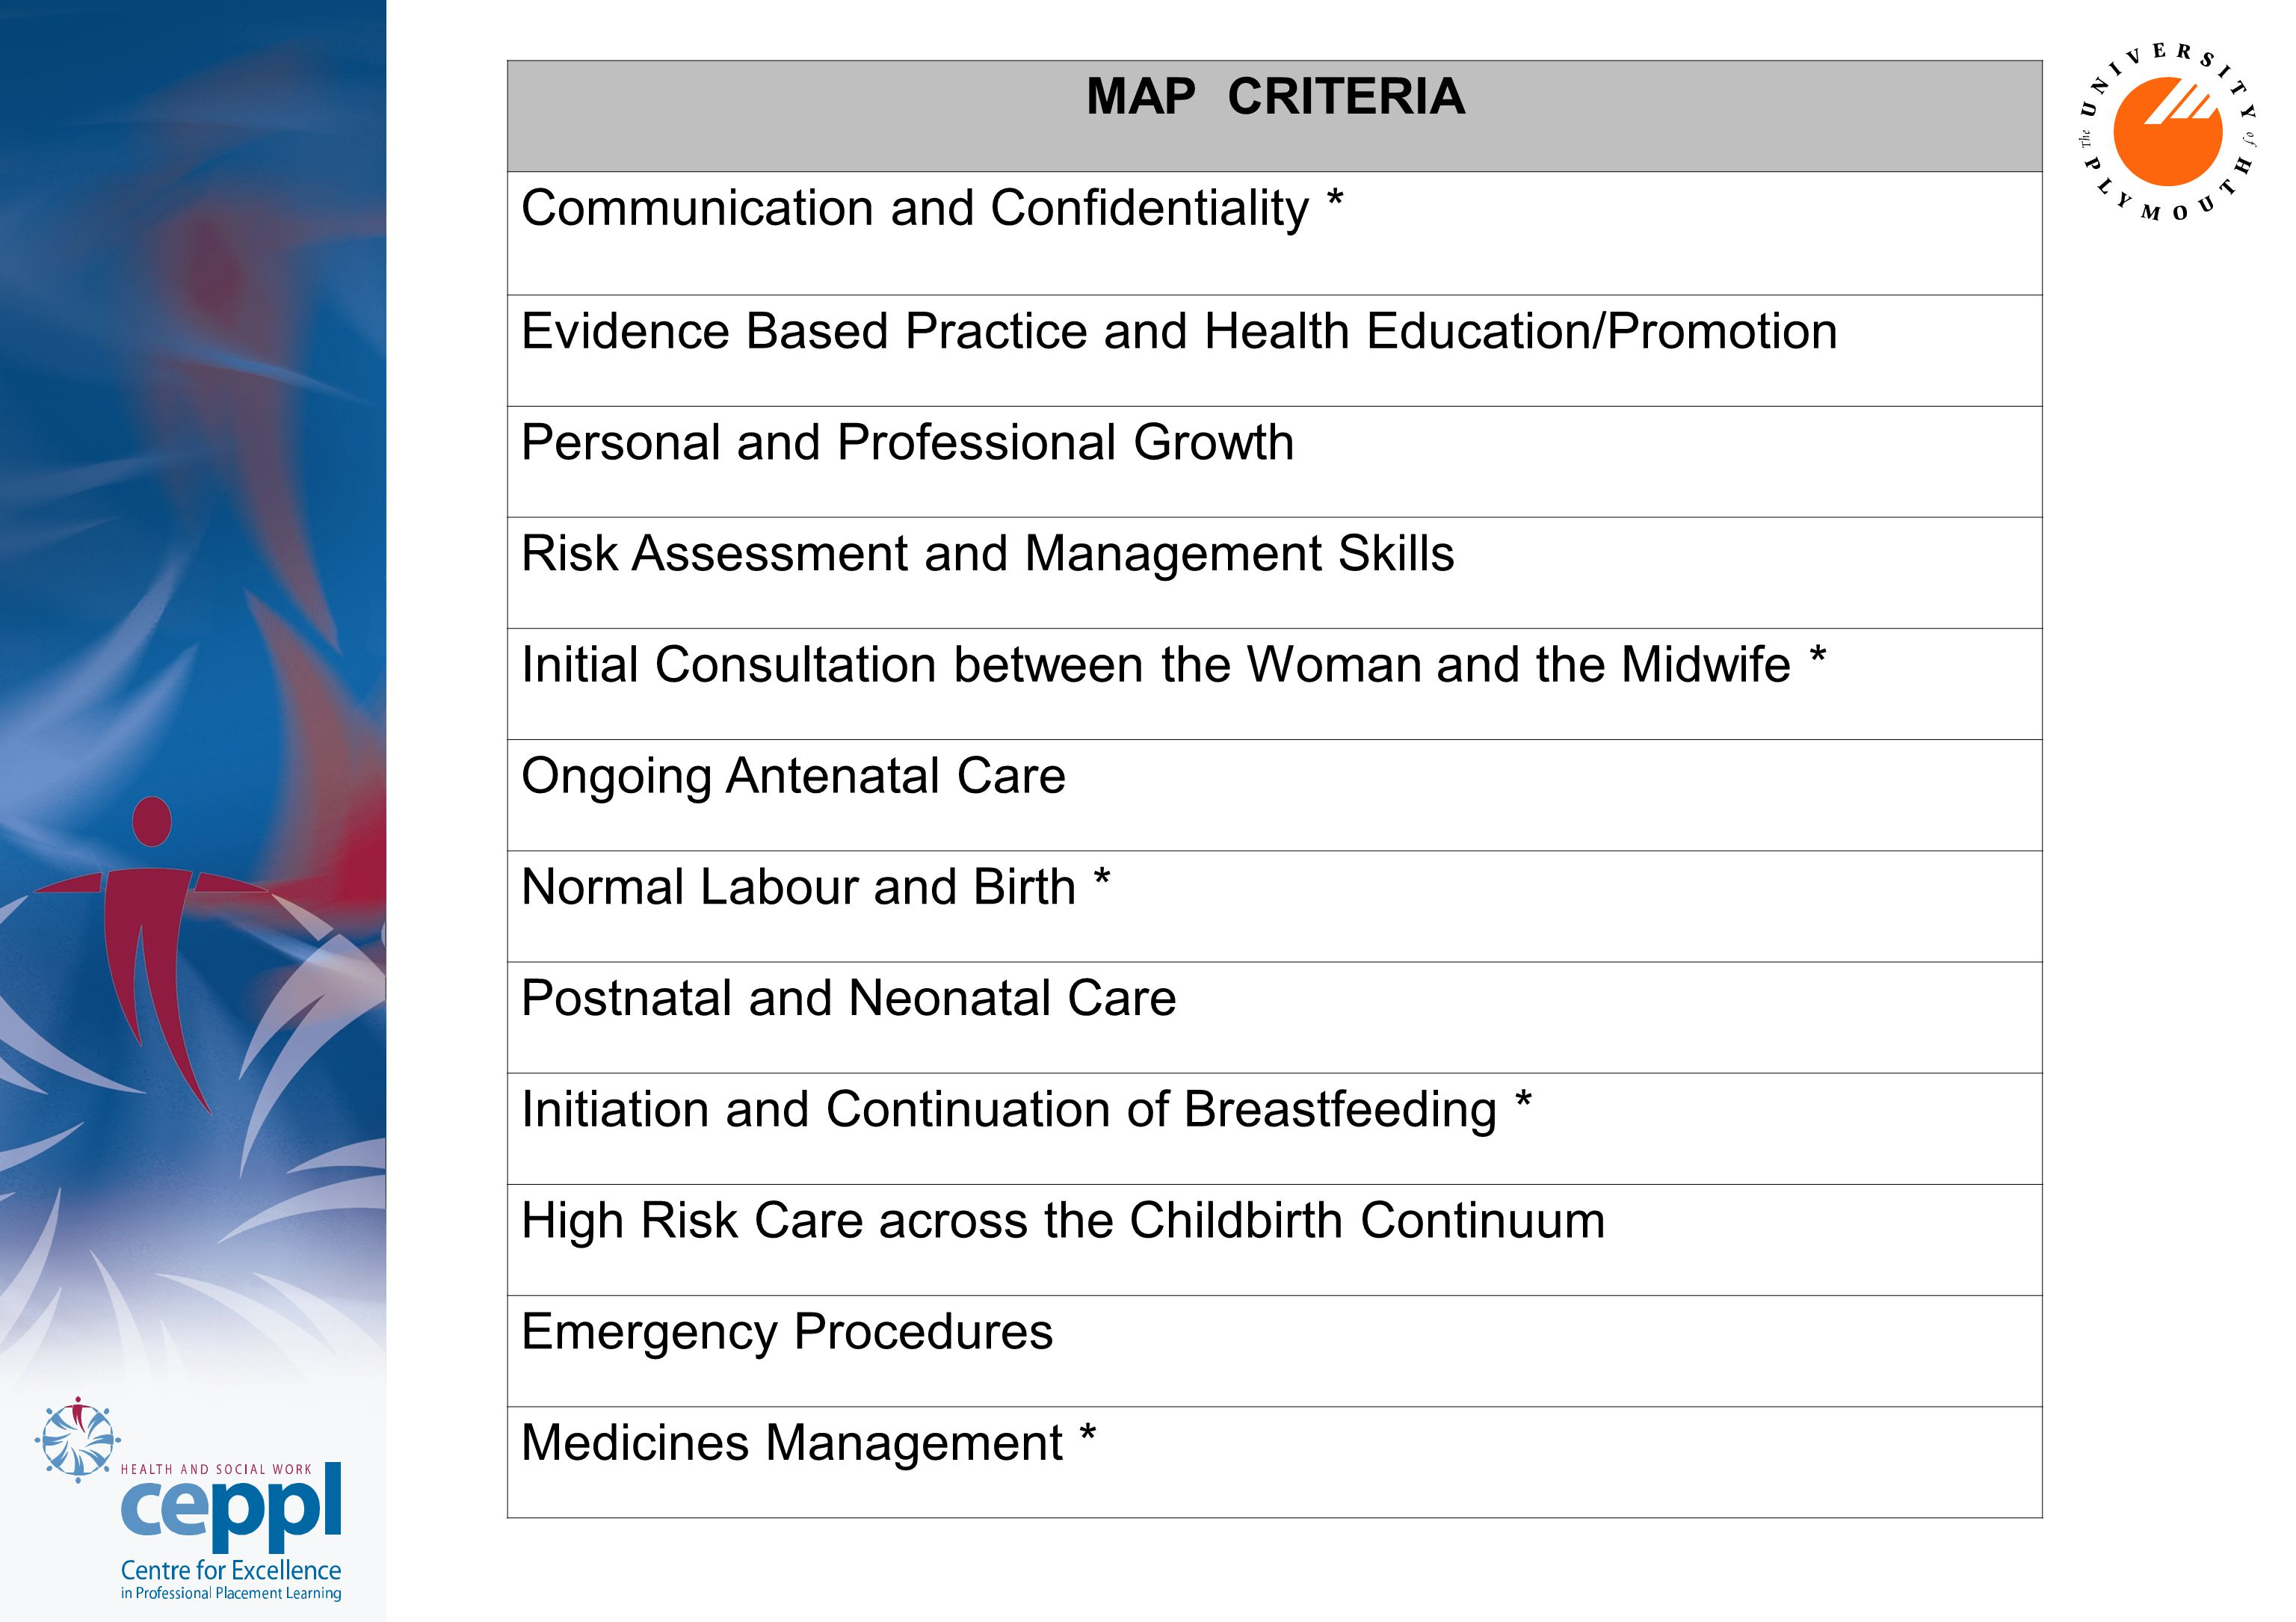 MAP CRITERIA Communication and Confidentiality * Evidence Based Practice and Health Education/Promotion Personal and Professional Growth Risk Assessment and Management Skills Initial Consultation between the Woman and the Midwife * Ongoing Antenatal Care Normal Labour and Birth * Postnatal and Neonatal Care Initiation and Continuation of Breastfeeding * High Risk Care across the Childbirth Continuum Emergency Procedures Medicines Management *